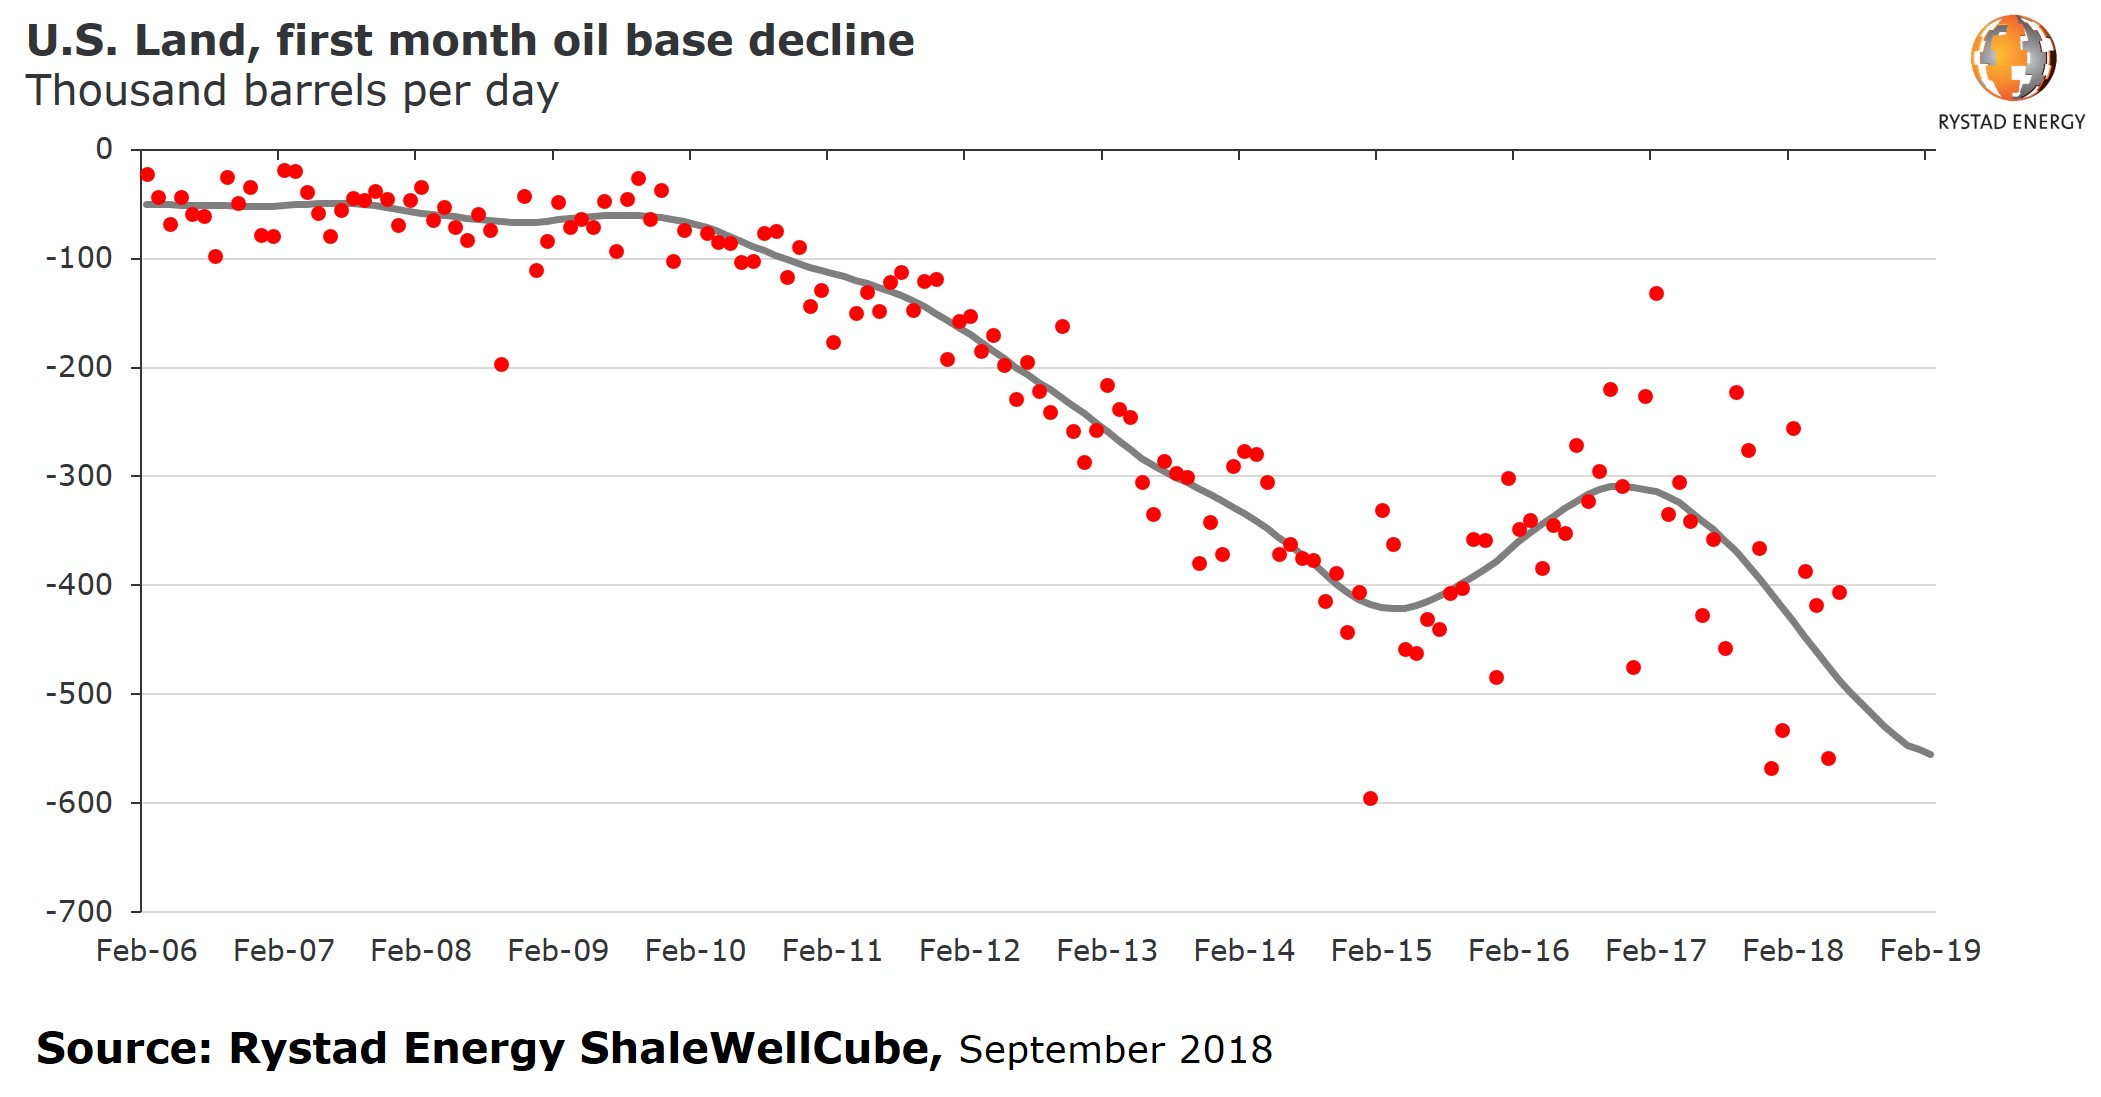 A chart showing U:S: Land, first month oil base decline in thousands barrels per day from 2006 to 2019. Source: Rystad Energy ShaleWellCube, September 2018